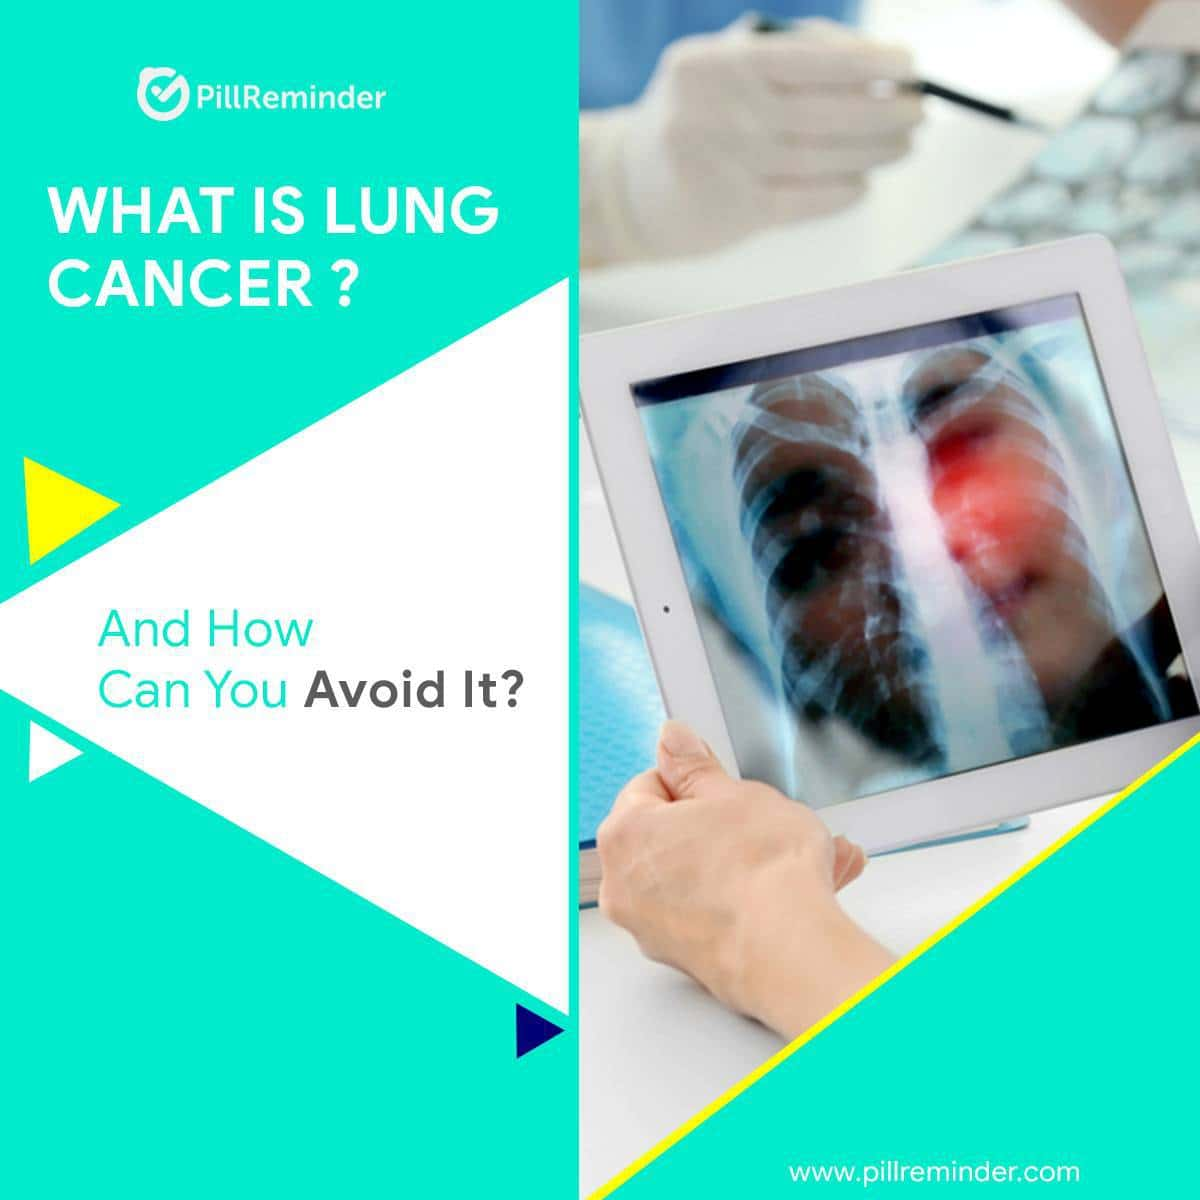 What Is Lung Cancer and How Can You Avoid It